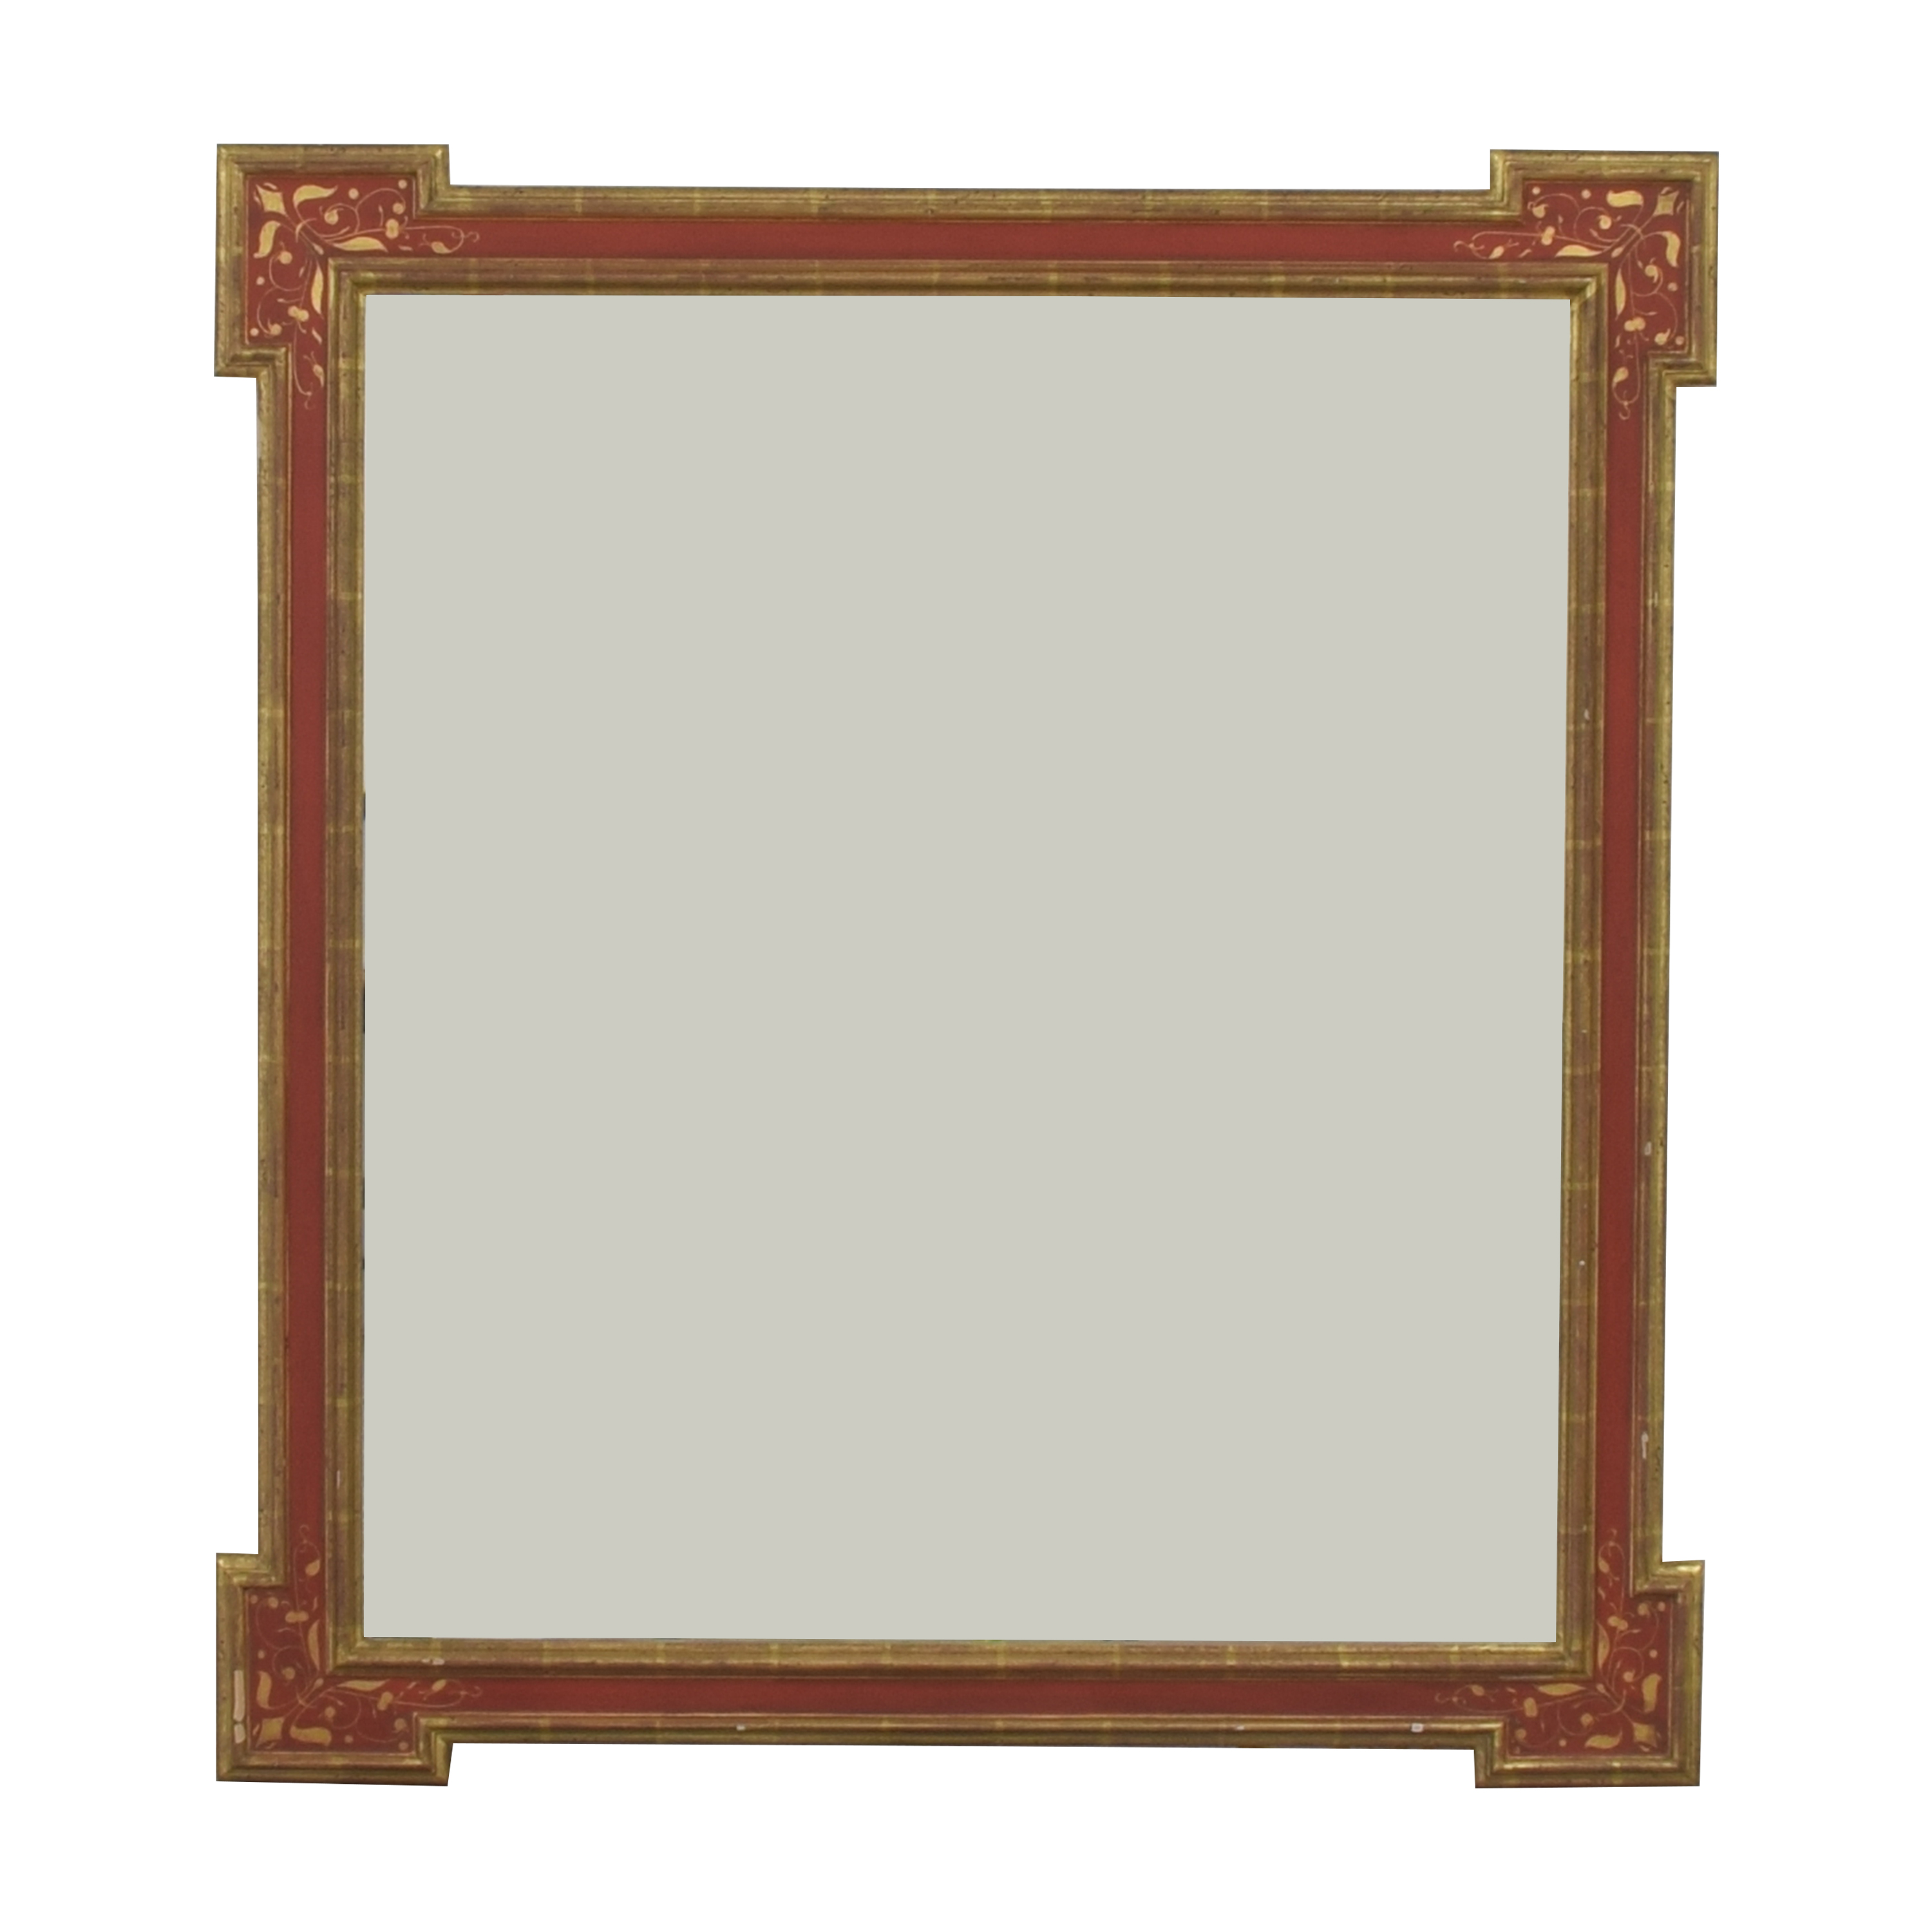 Summa Gallery Summa Gallery Decorative Framed Wall Mirror second hand